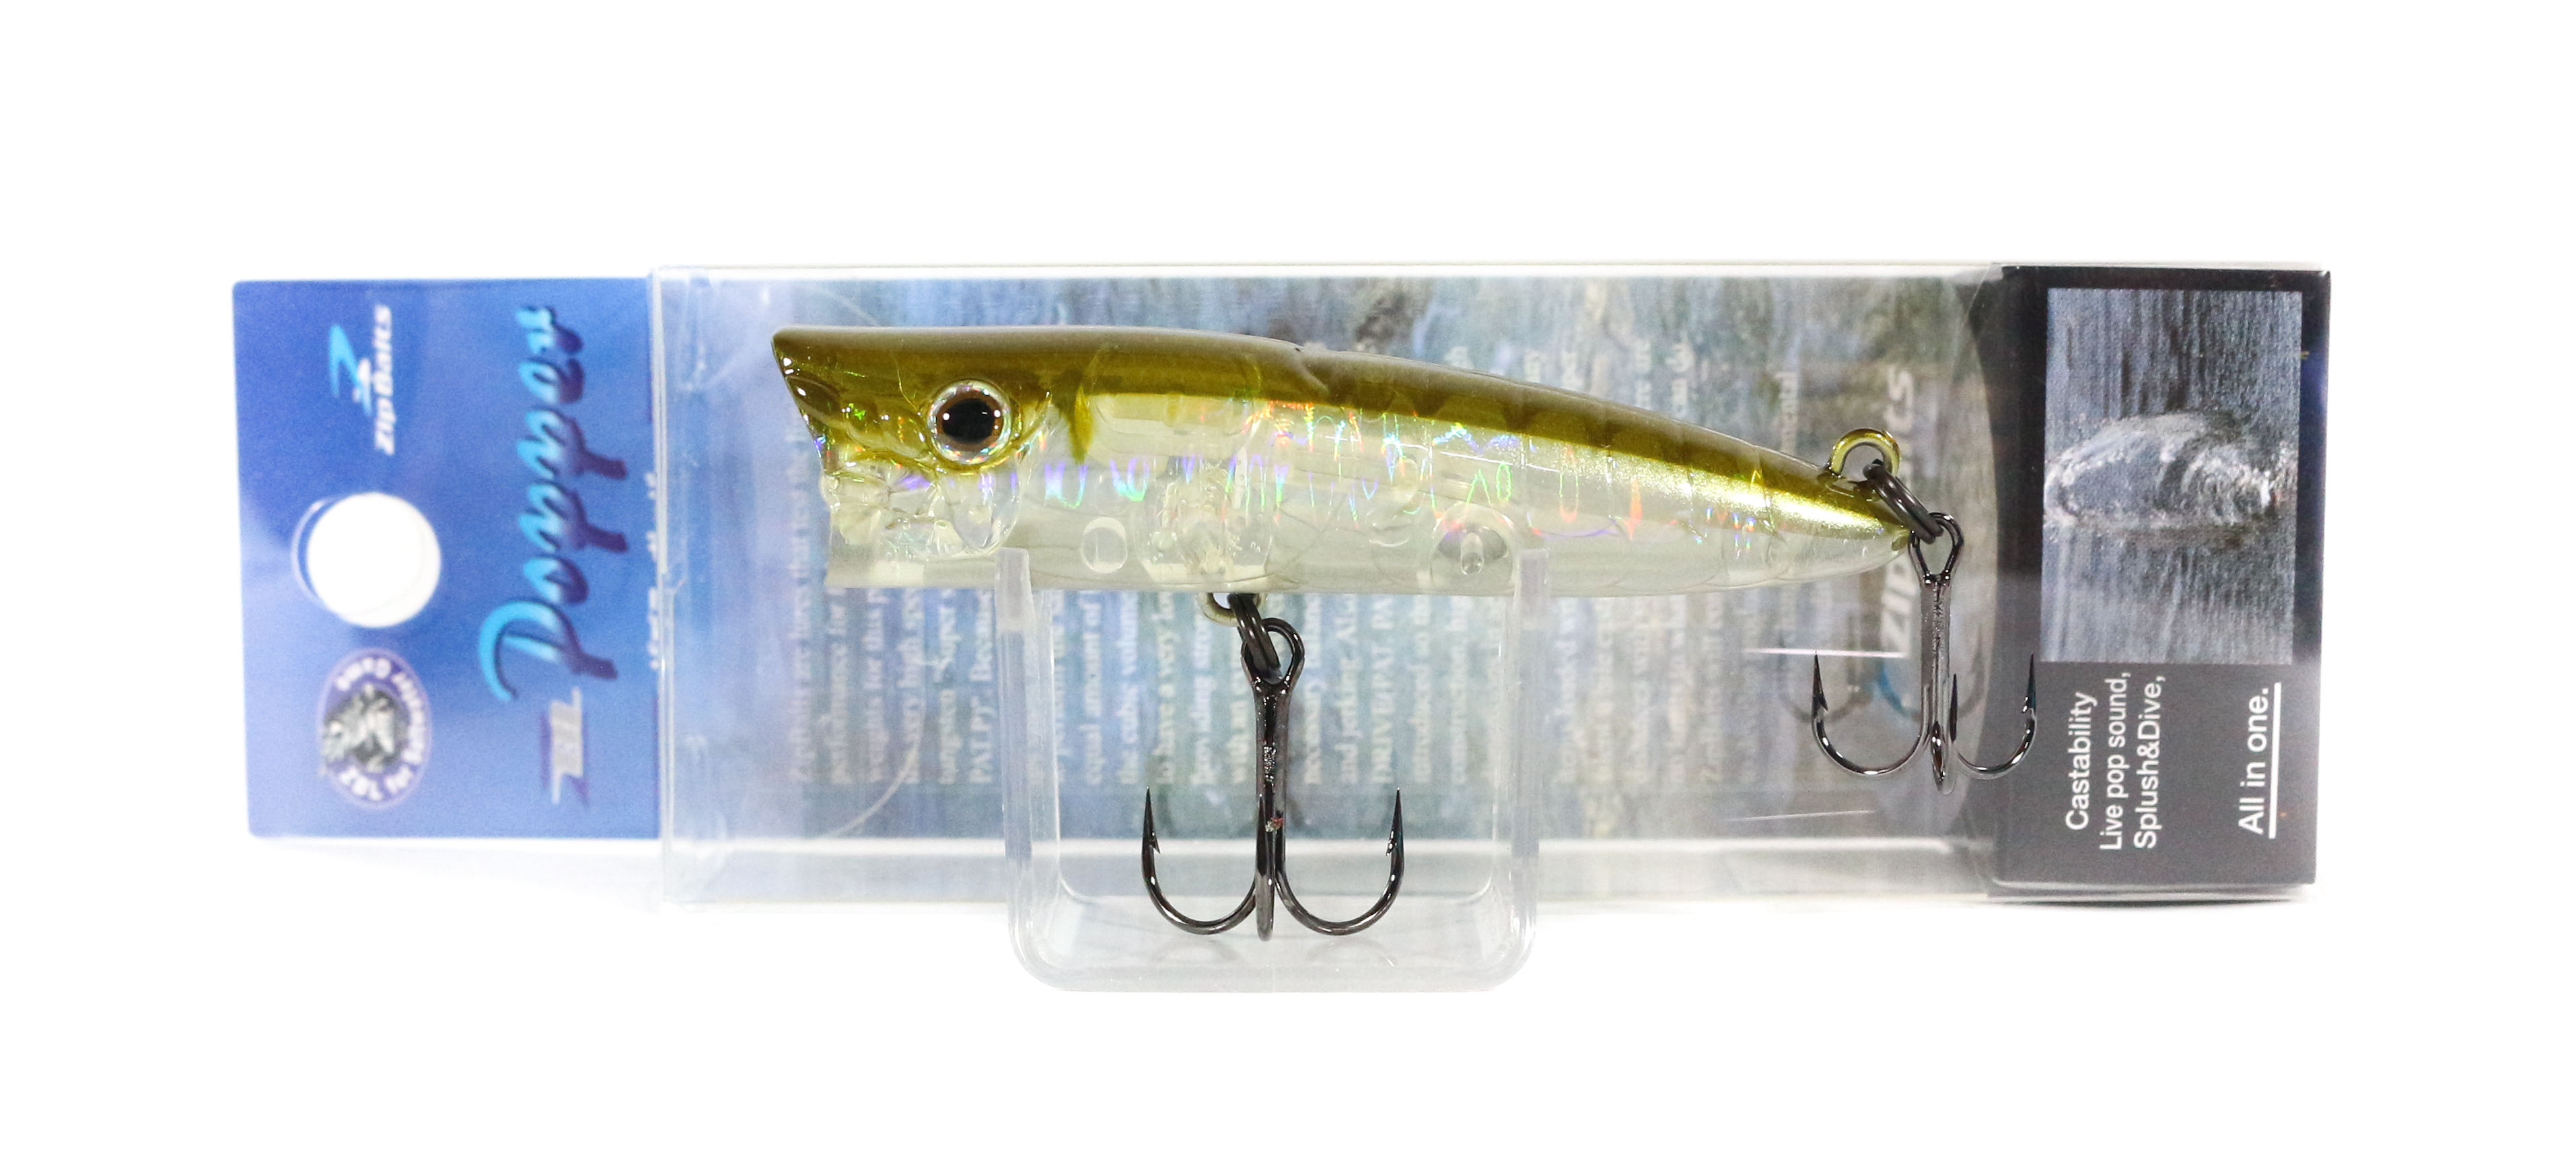 Sale Zipbaits ZBL Popper 68mm Floating Lure 023R (6107)